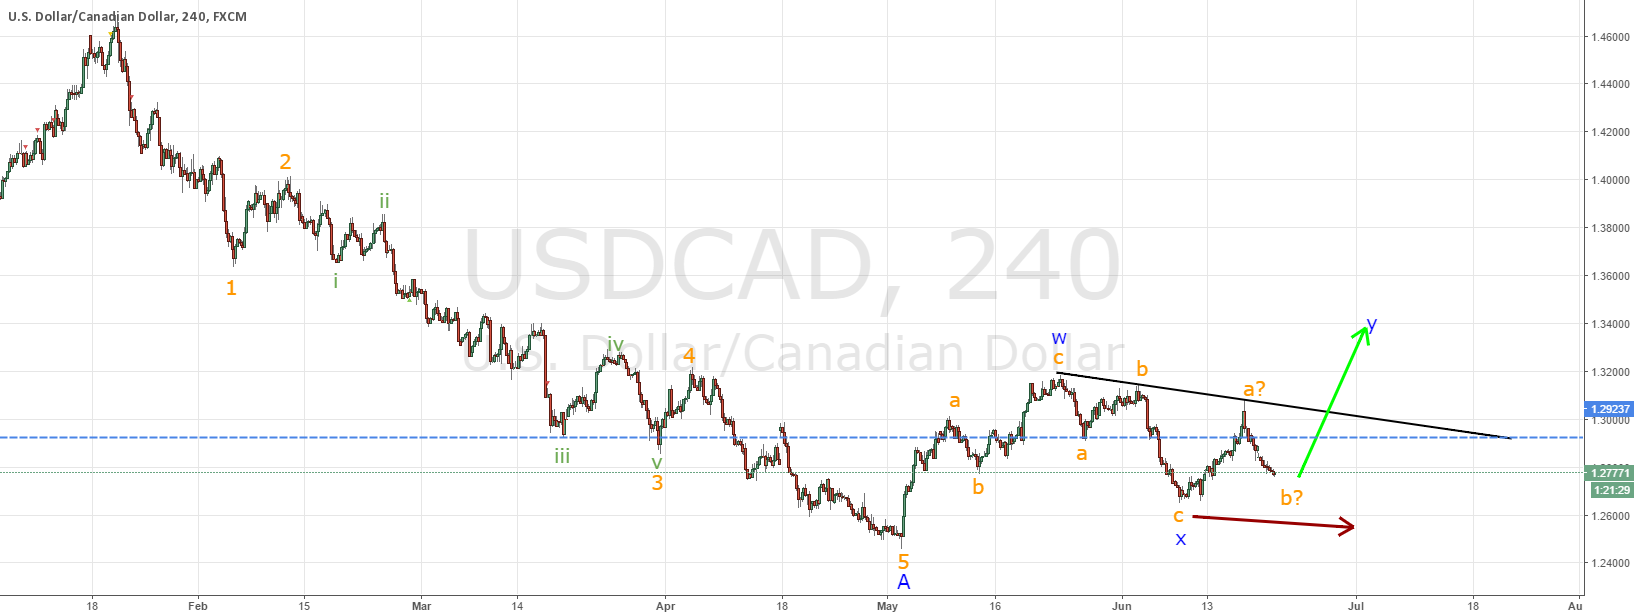 USDCAD setting up for impulse higher